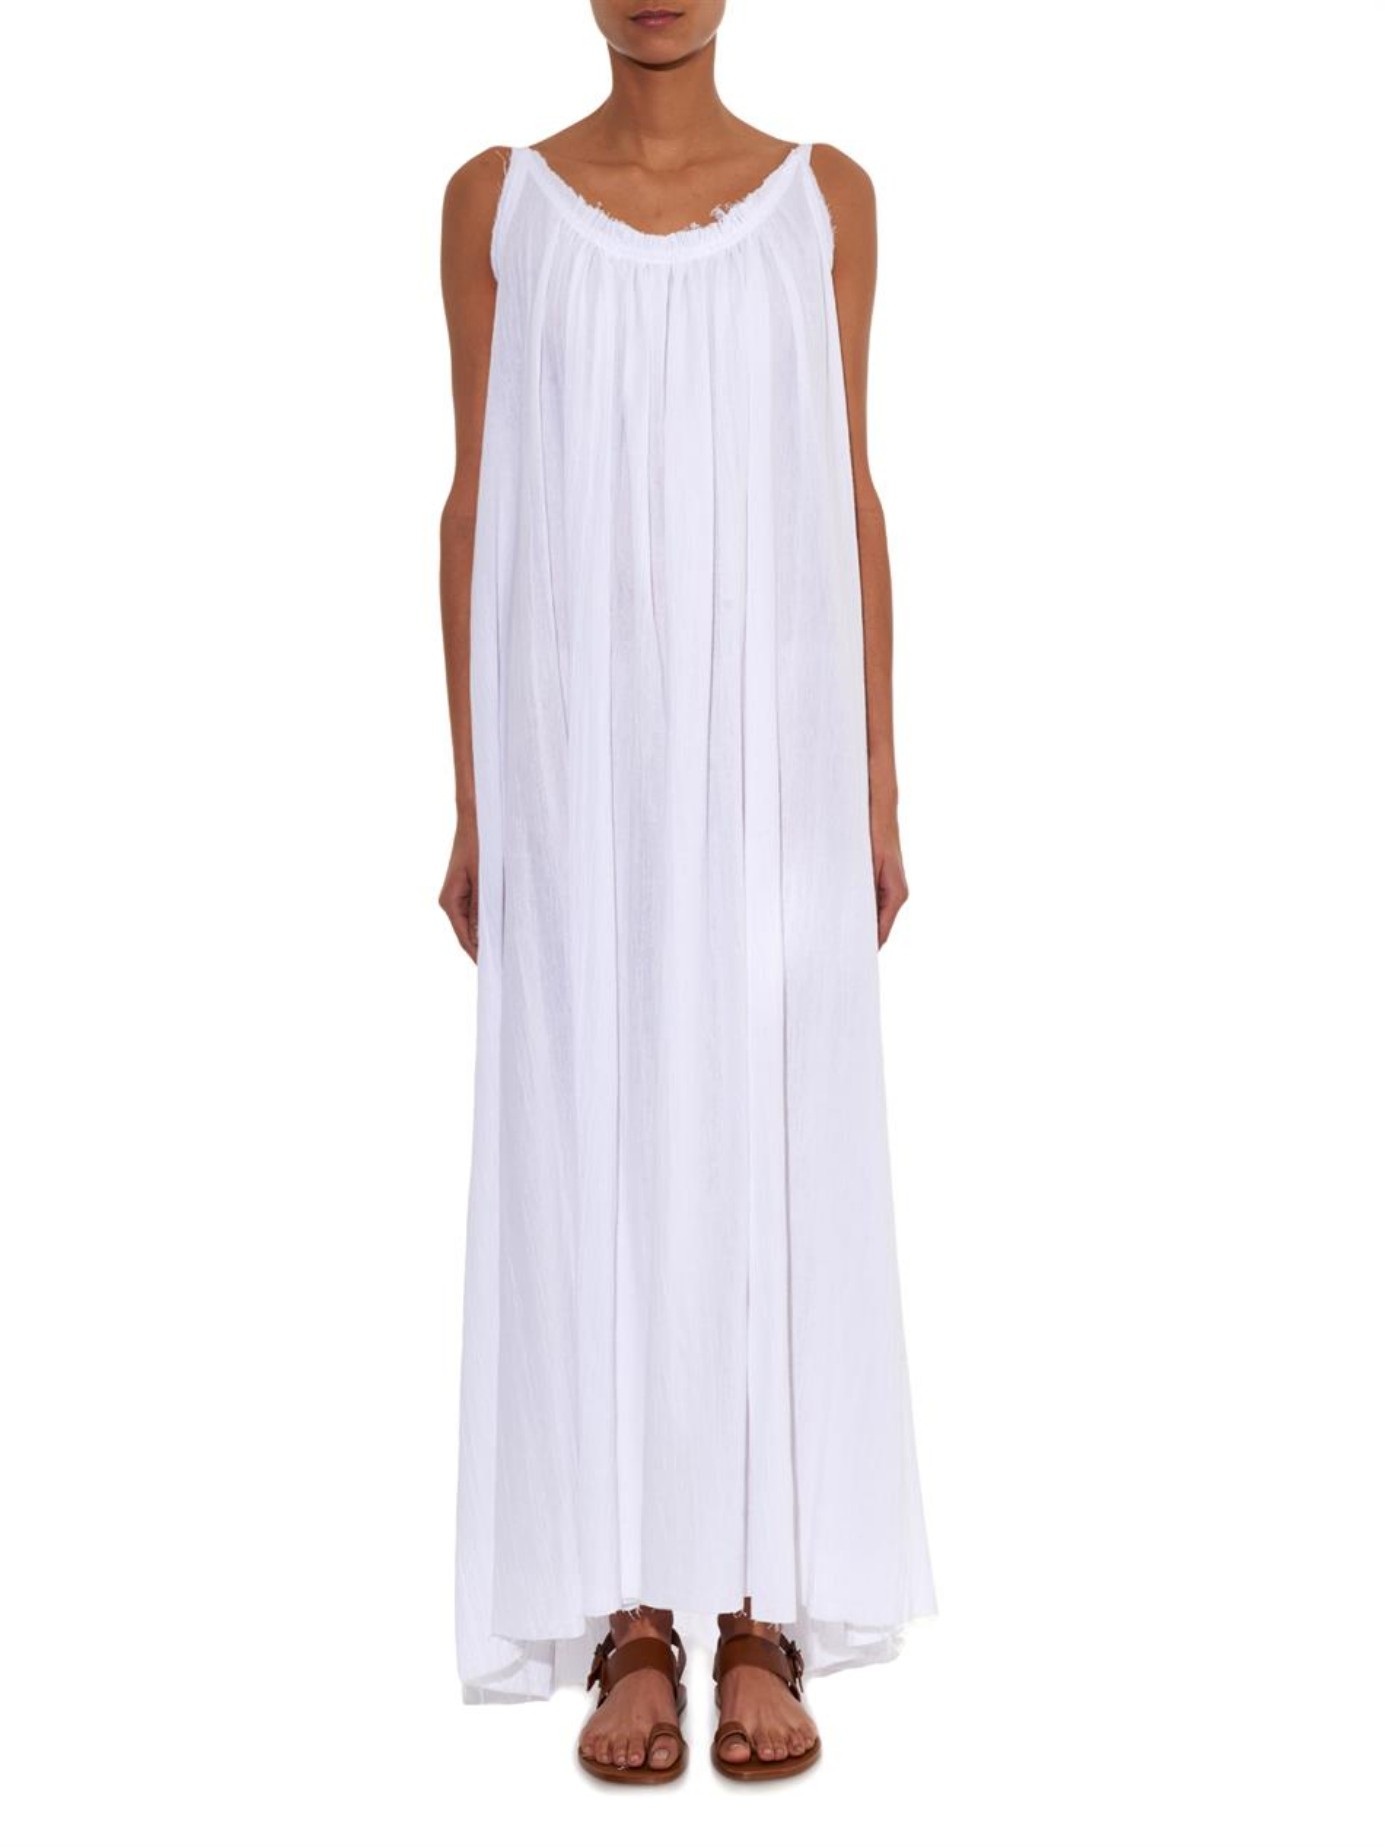 Loup charmant Cotton-Seersucker Maxi Dress in White | Lyst